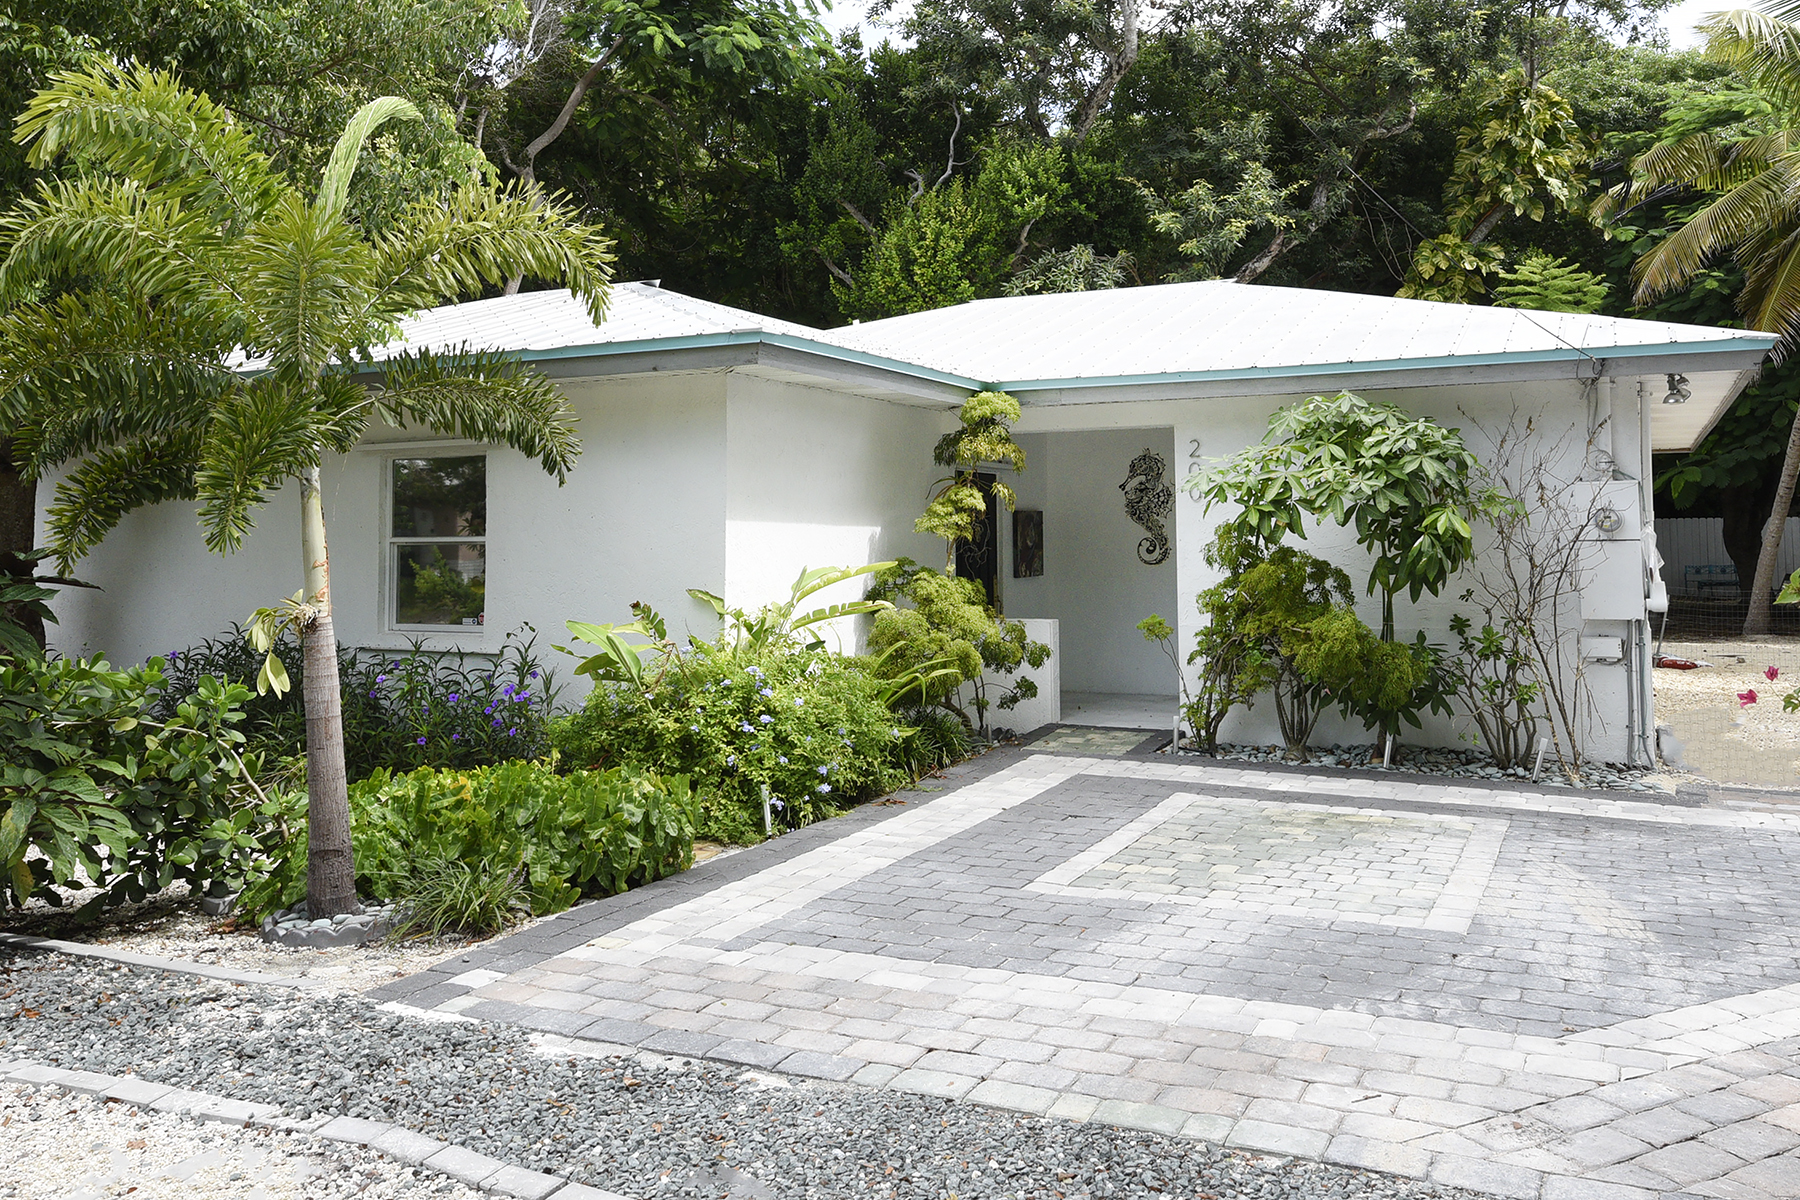 Maison unifamiliale pour l Vente à Desirable Cottage 200 Thompsonville Road Islamorada, Florida 33070 États-Unis